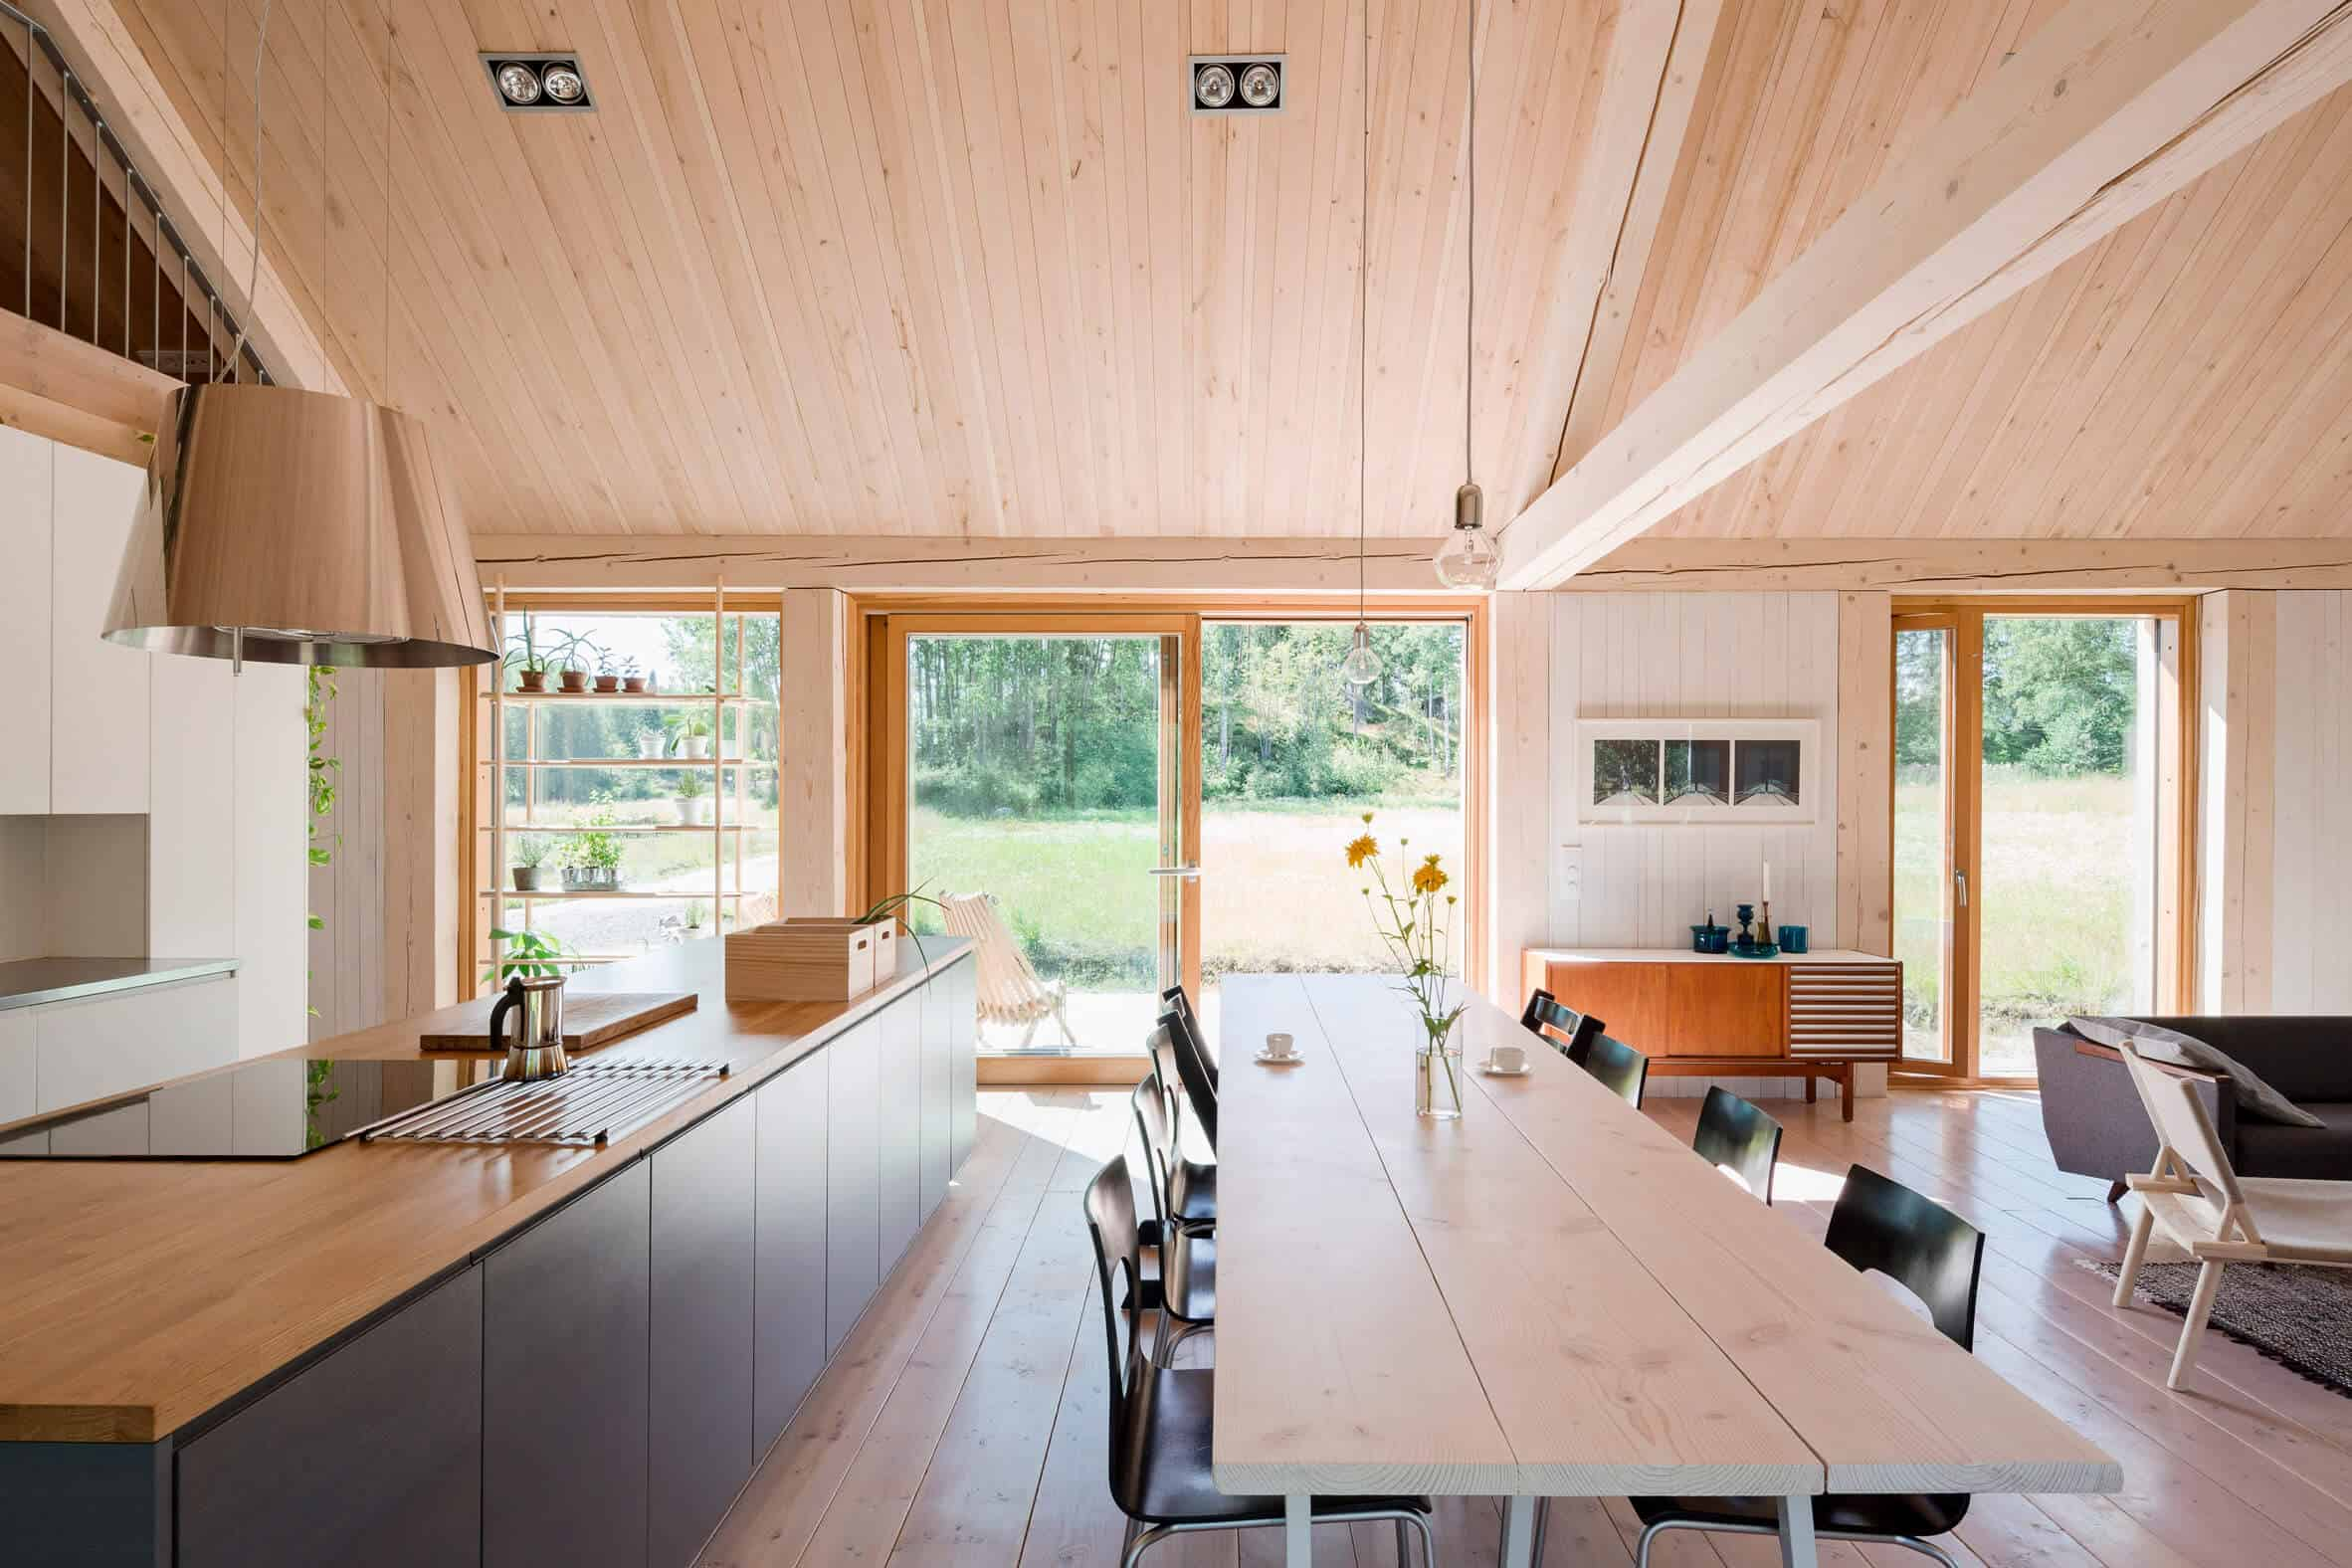 Iconic Simplicity in a Finnish LakeHouse by MNy Arkitekter (9)